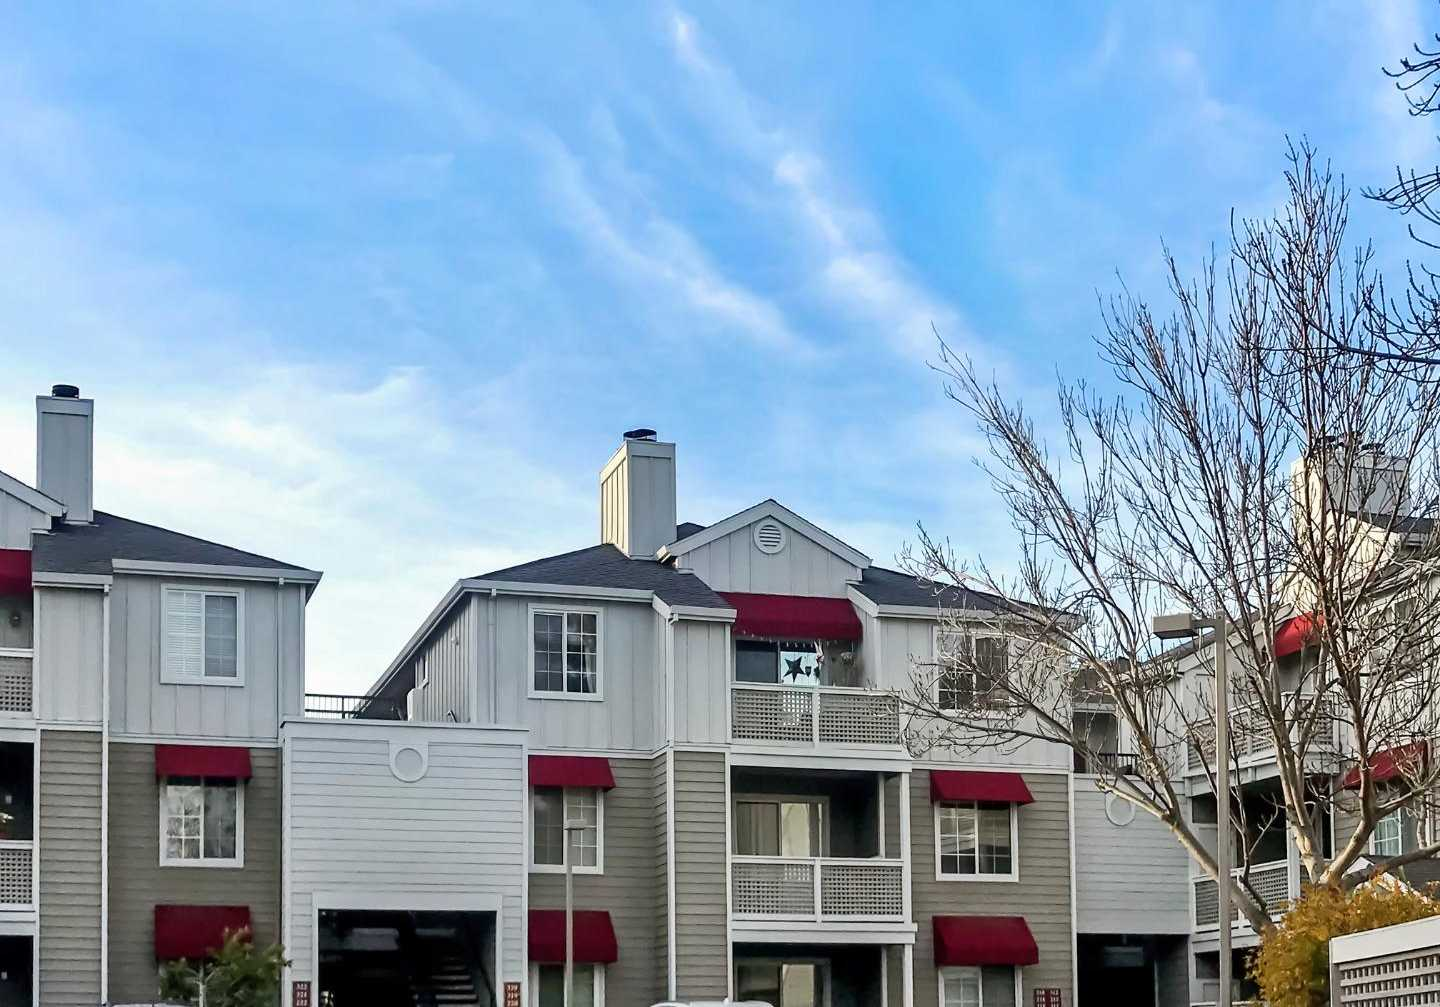 $1,050,000 - 3Br/2Ba -  for Sale in Sunnyvale